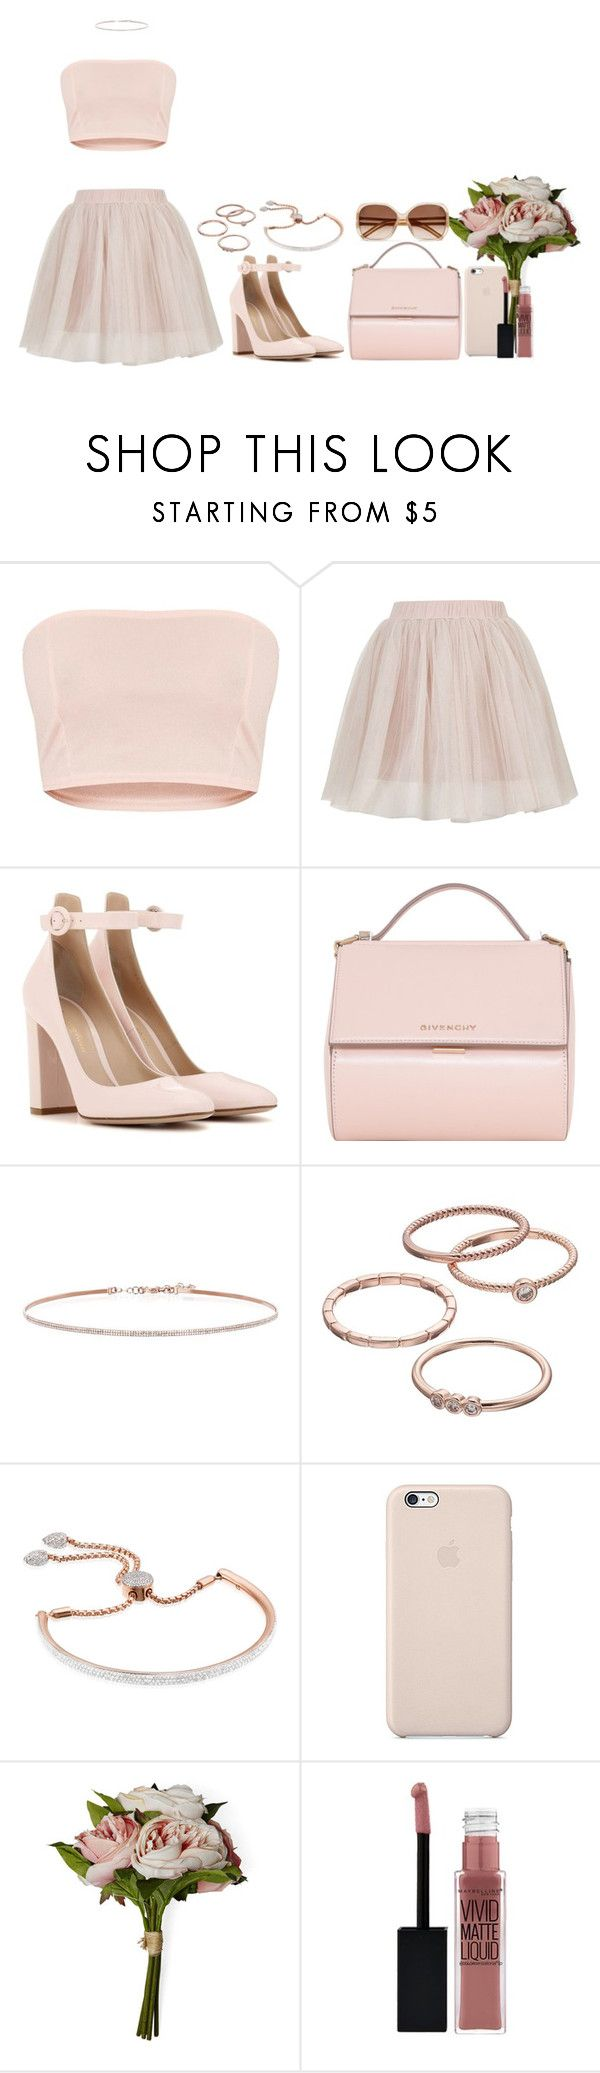 """""""Untitled #1402"""" by hernandezjenni ❤ liked on Polyvore featuring Rare London, Gianvito Rossi, Givenchy, EF Collection, LC Lauren Conrad, Monica Vinader, House & Home, Maybelline and Chloé"""